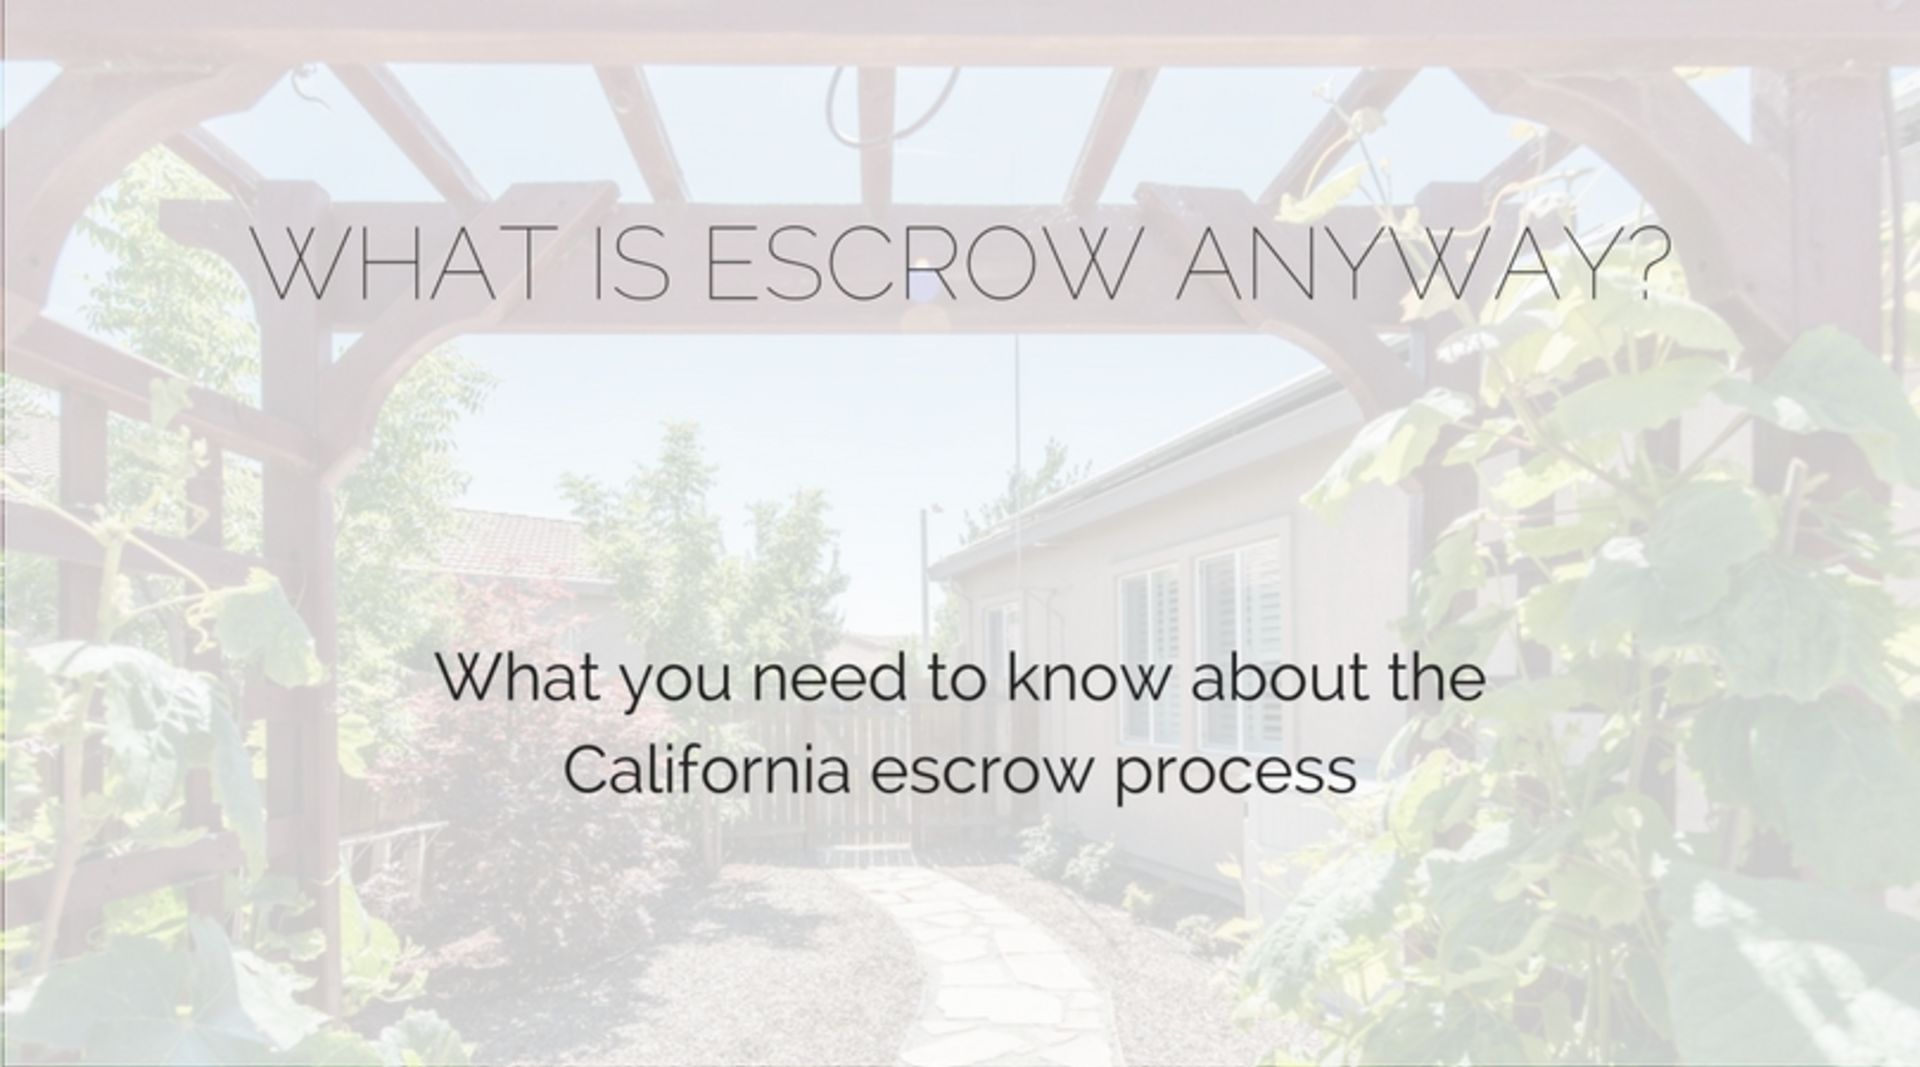 What is escrow anyway?